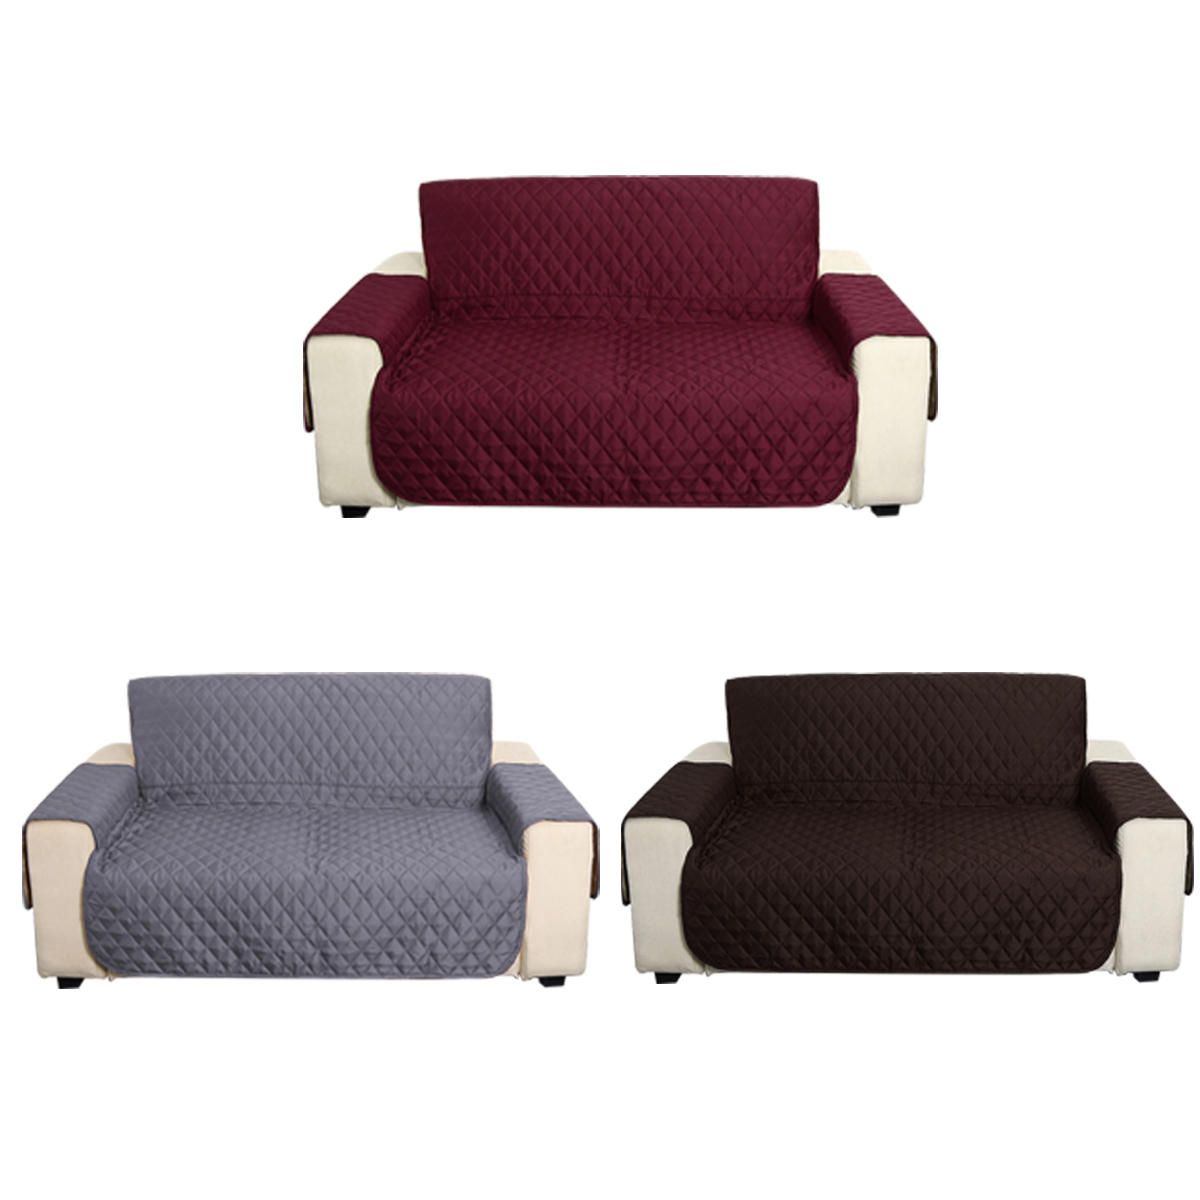 10 Waterproof Sofa Cover Most Of The Elegant And Also Stunning Sofa Covers Chair Covers Pet Protector